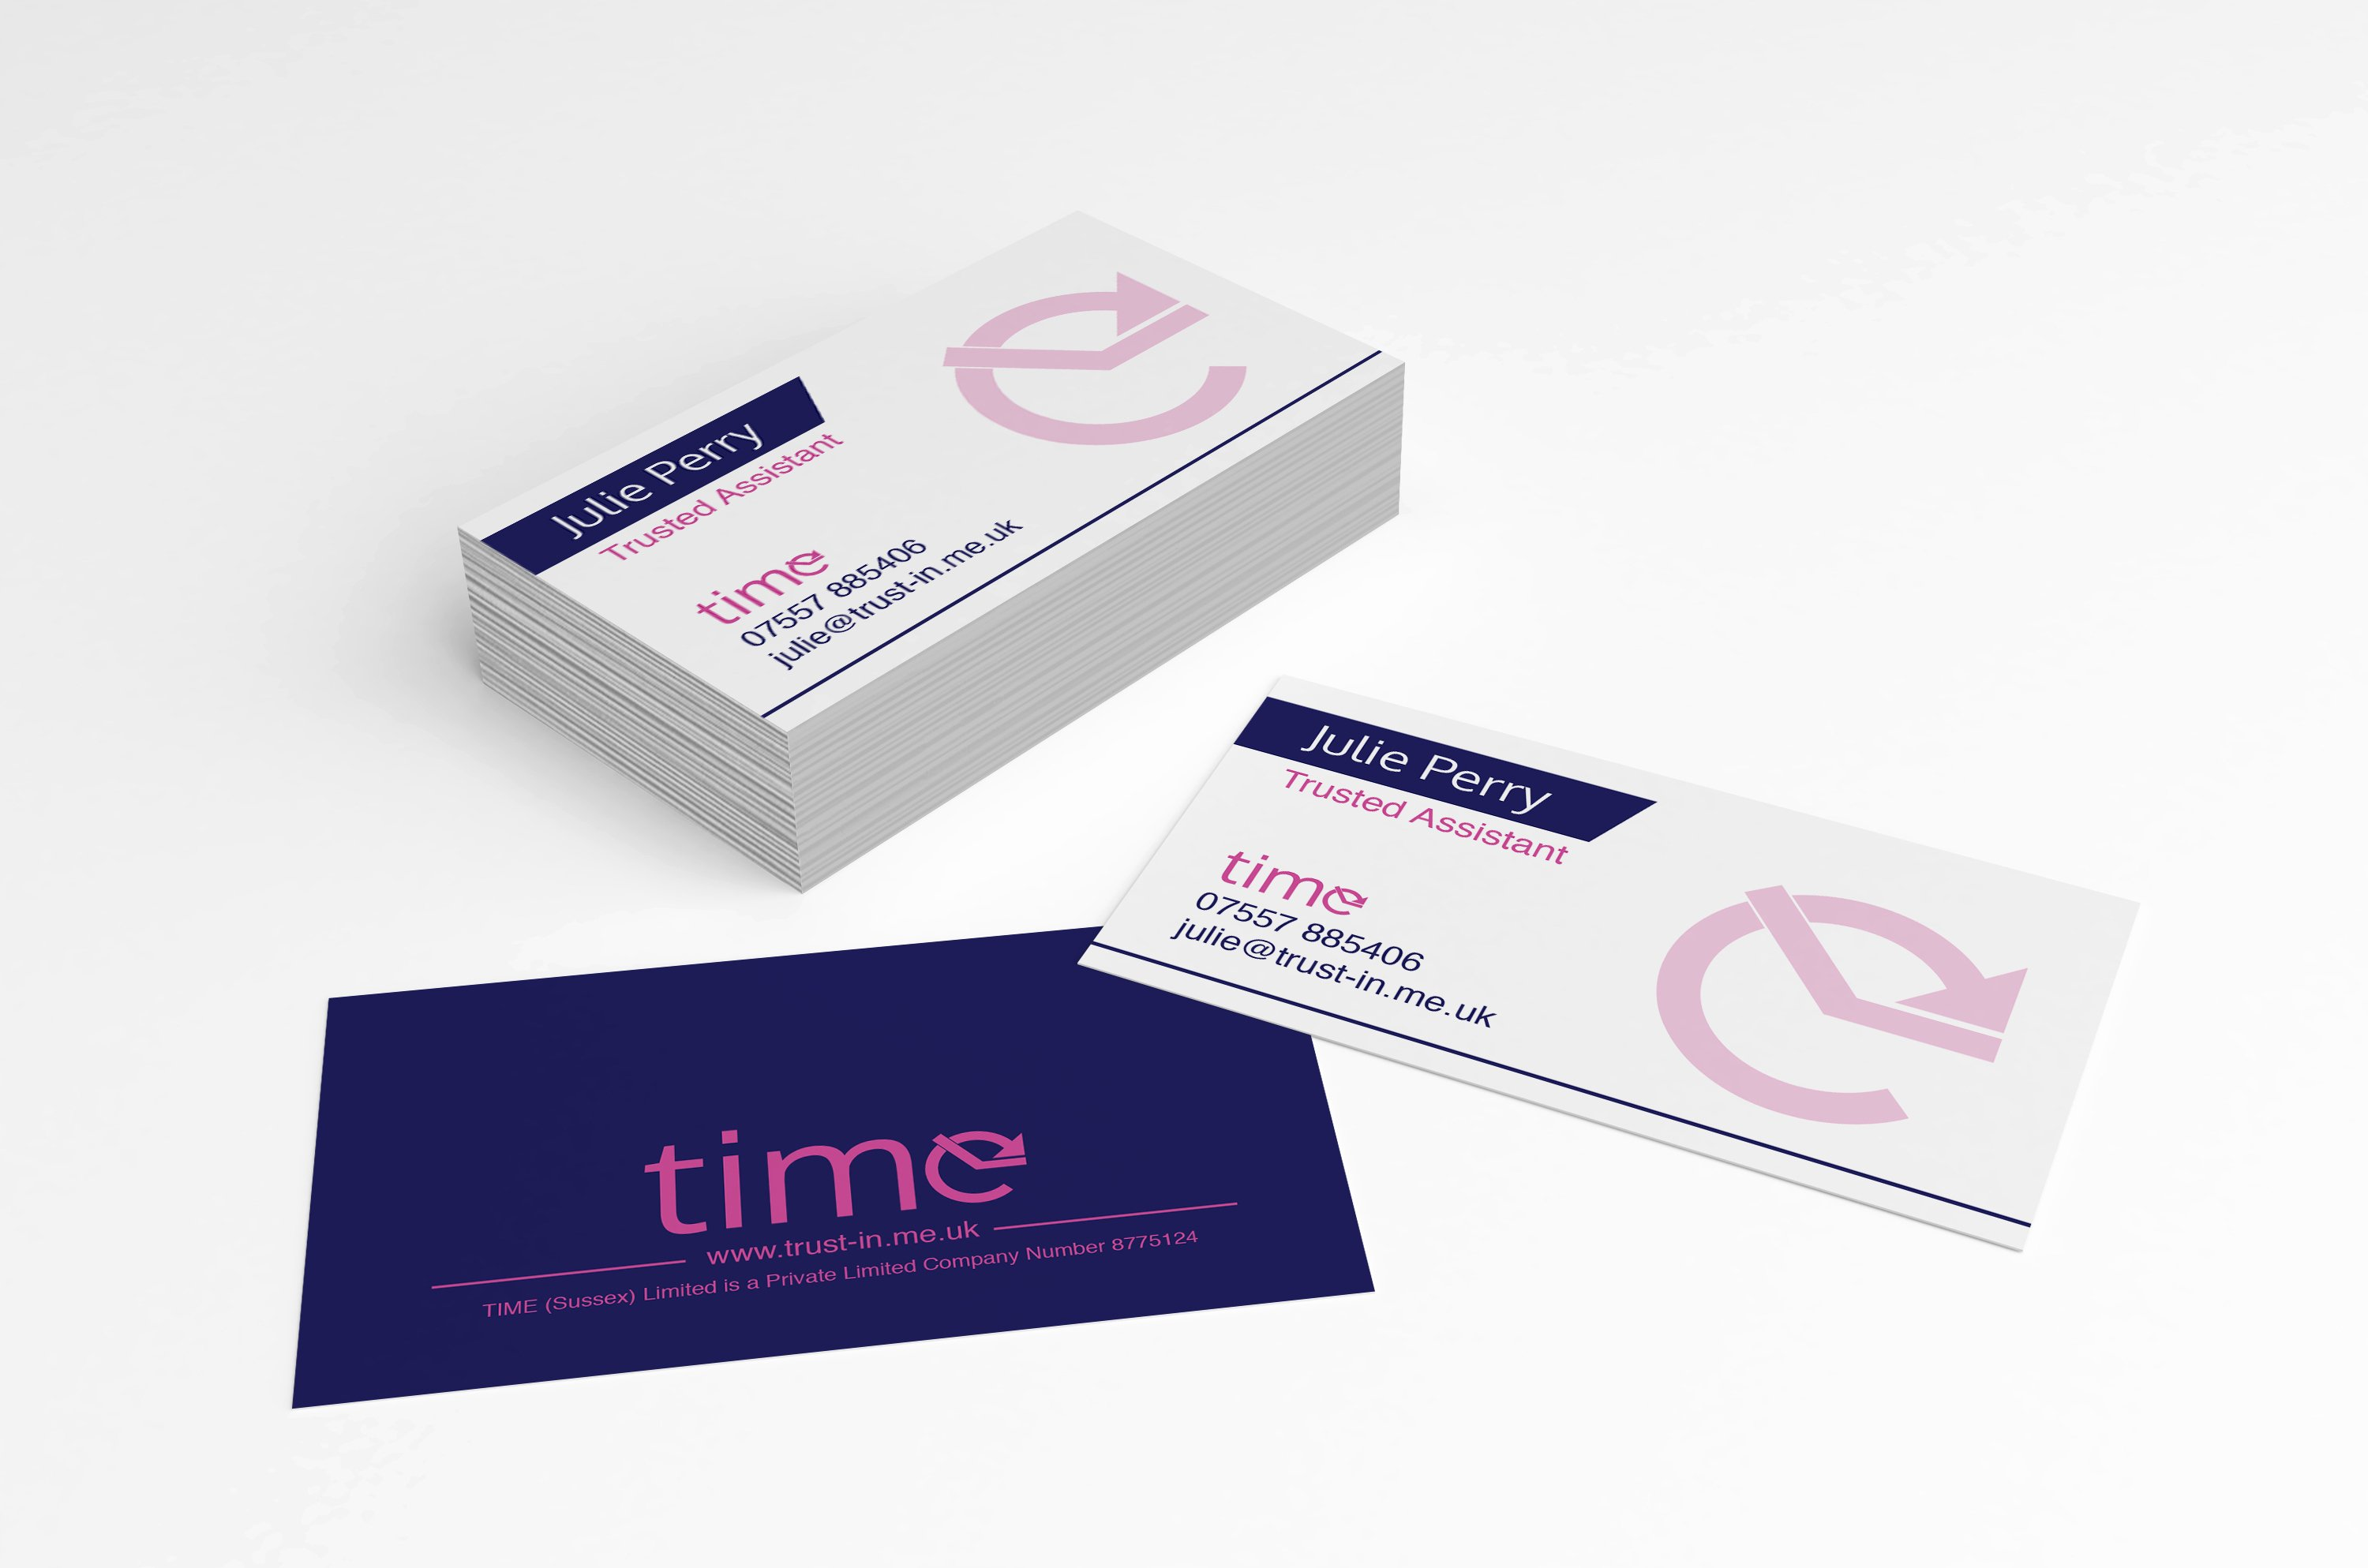 Personal assistant Business Cards Best Of andrew John Design Trusted assistant Stationary